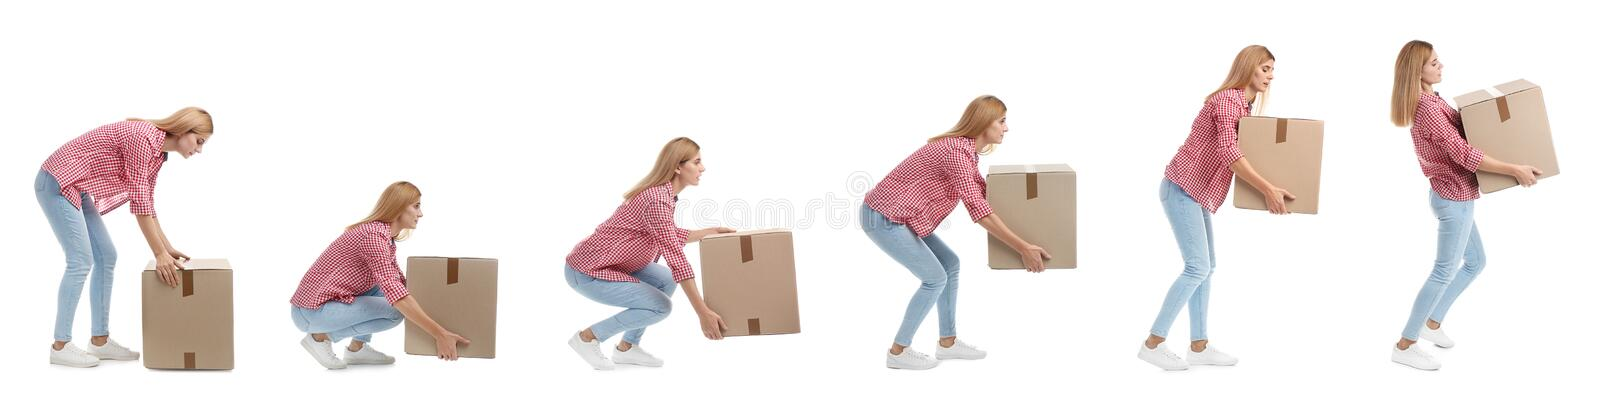 Collage of woman lifting heavy cardboard box on white background. Posture concept stock photography